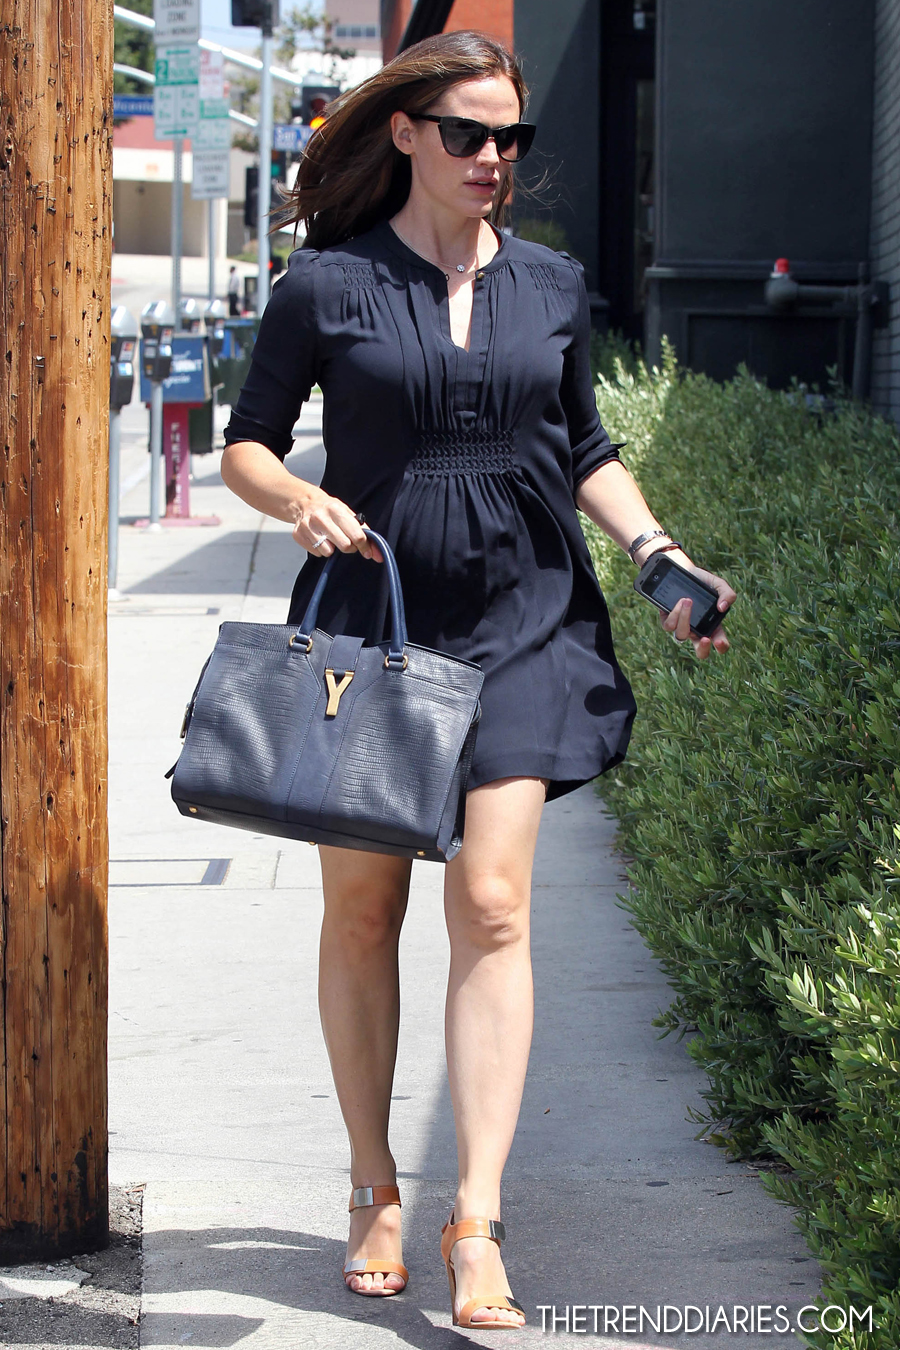 ef7c5e66e2 Jennifer Garner at Tavern in Santa Monica